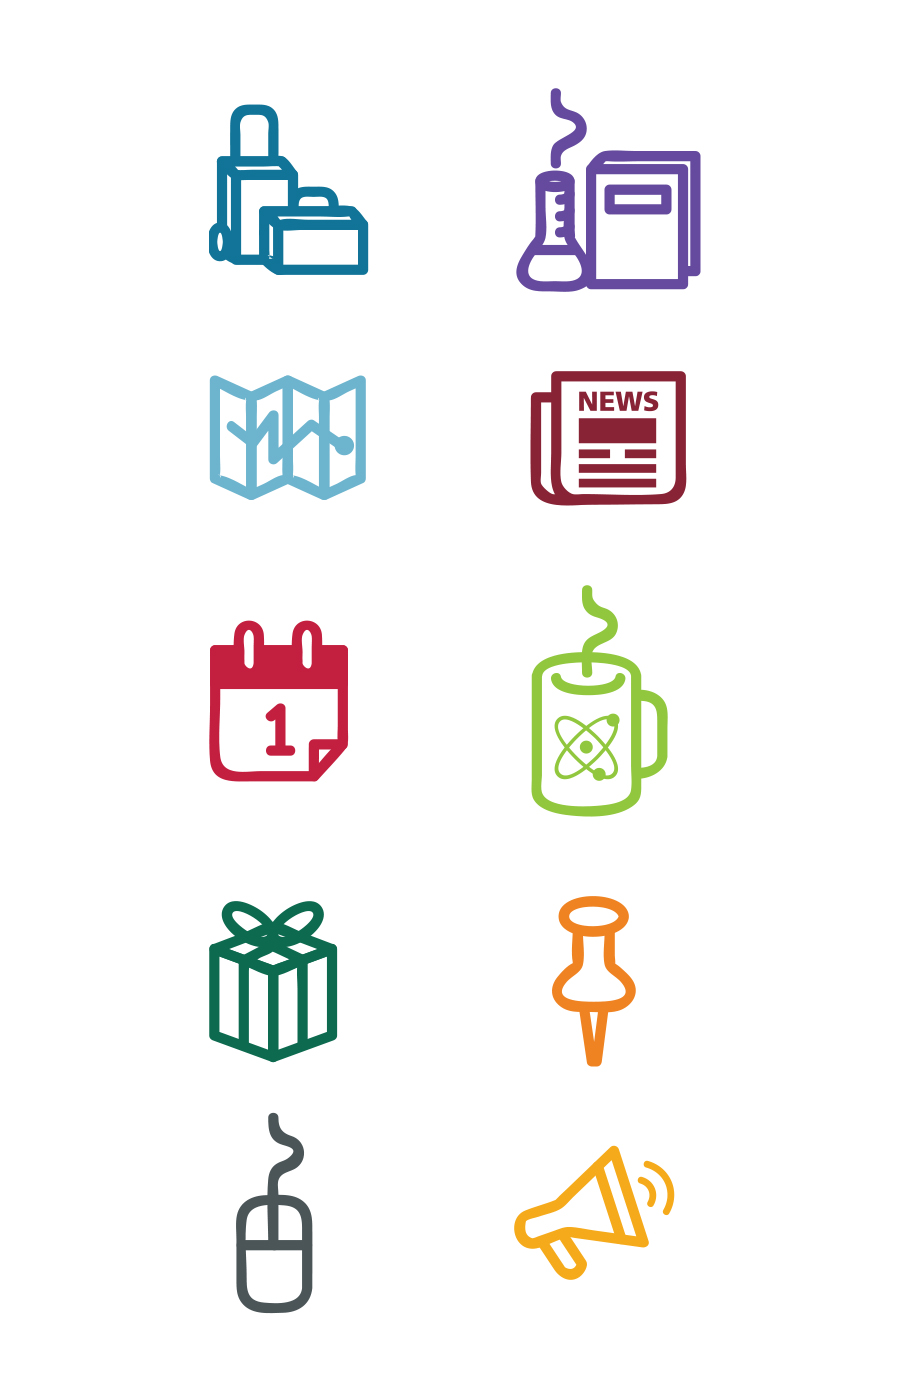 College of Arts and Sciences custom icon set for website